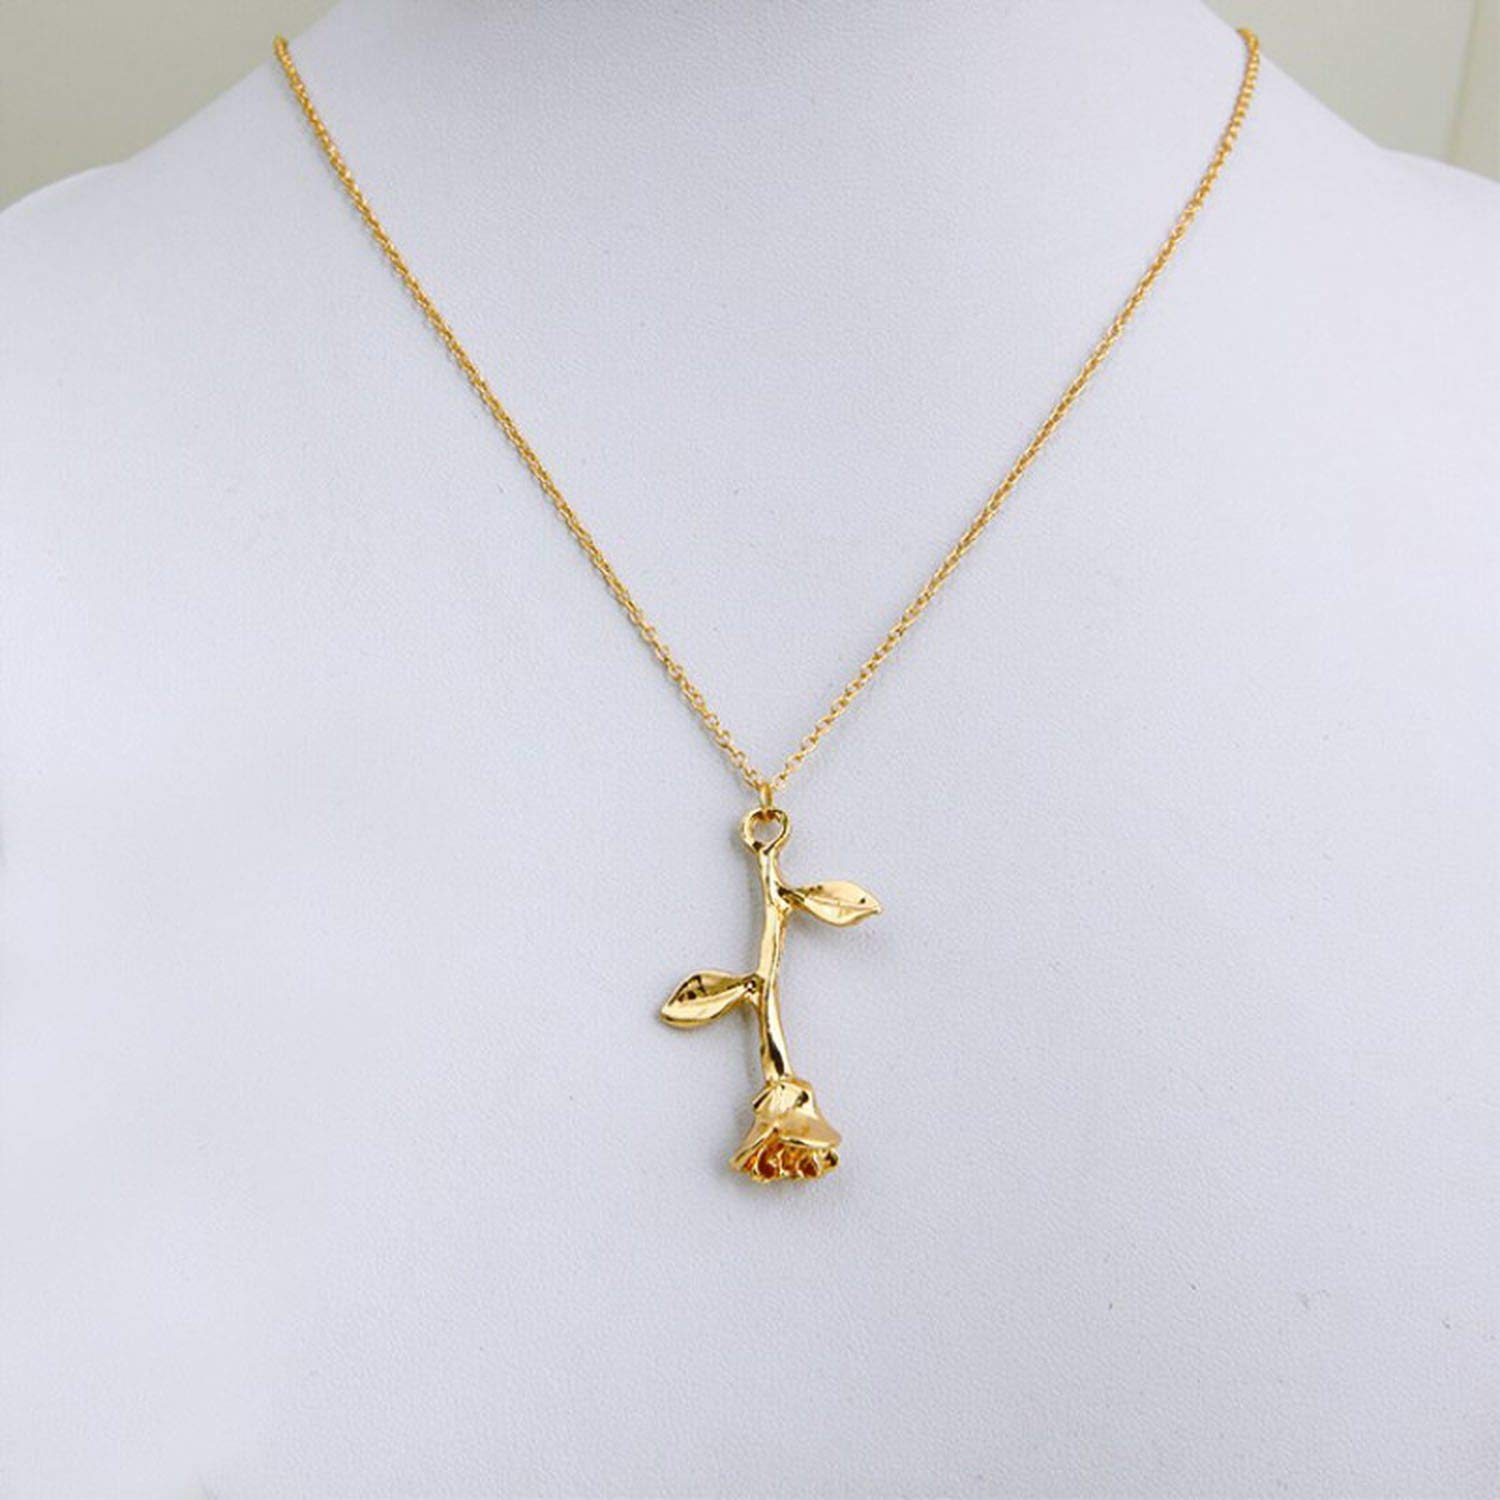 ihuoshang Jewelry Collier Pink Gold Rose Statement Pendant Necklace Womens Beauty and Beast Jewelry Lovers Gifts